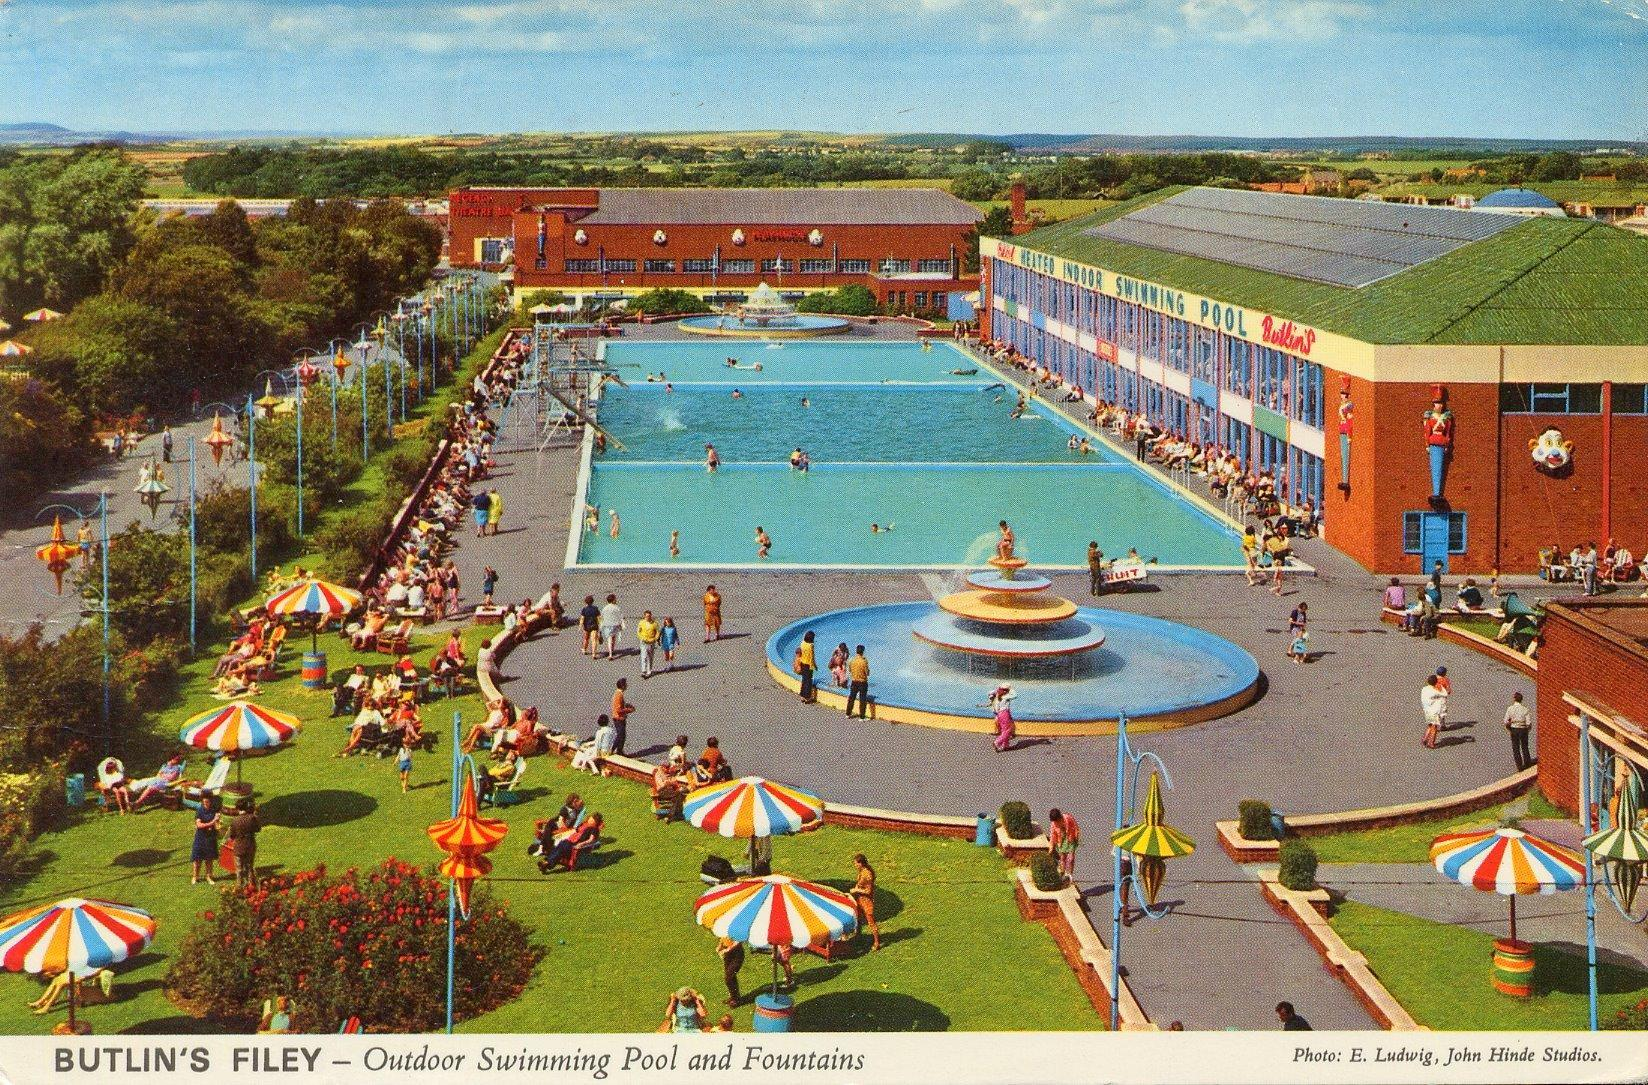 Butlins Filey - Outdoor Swimming Pool & Fountains